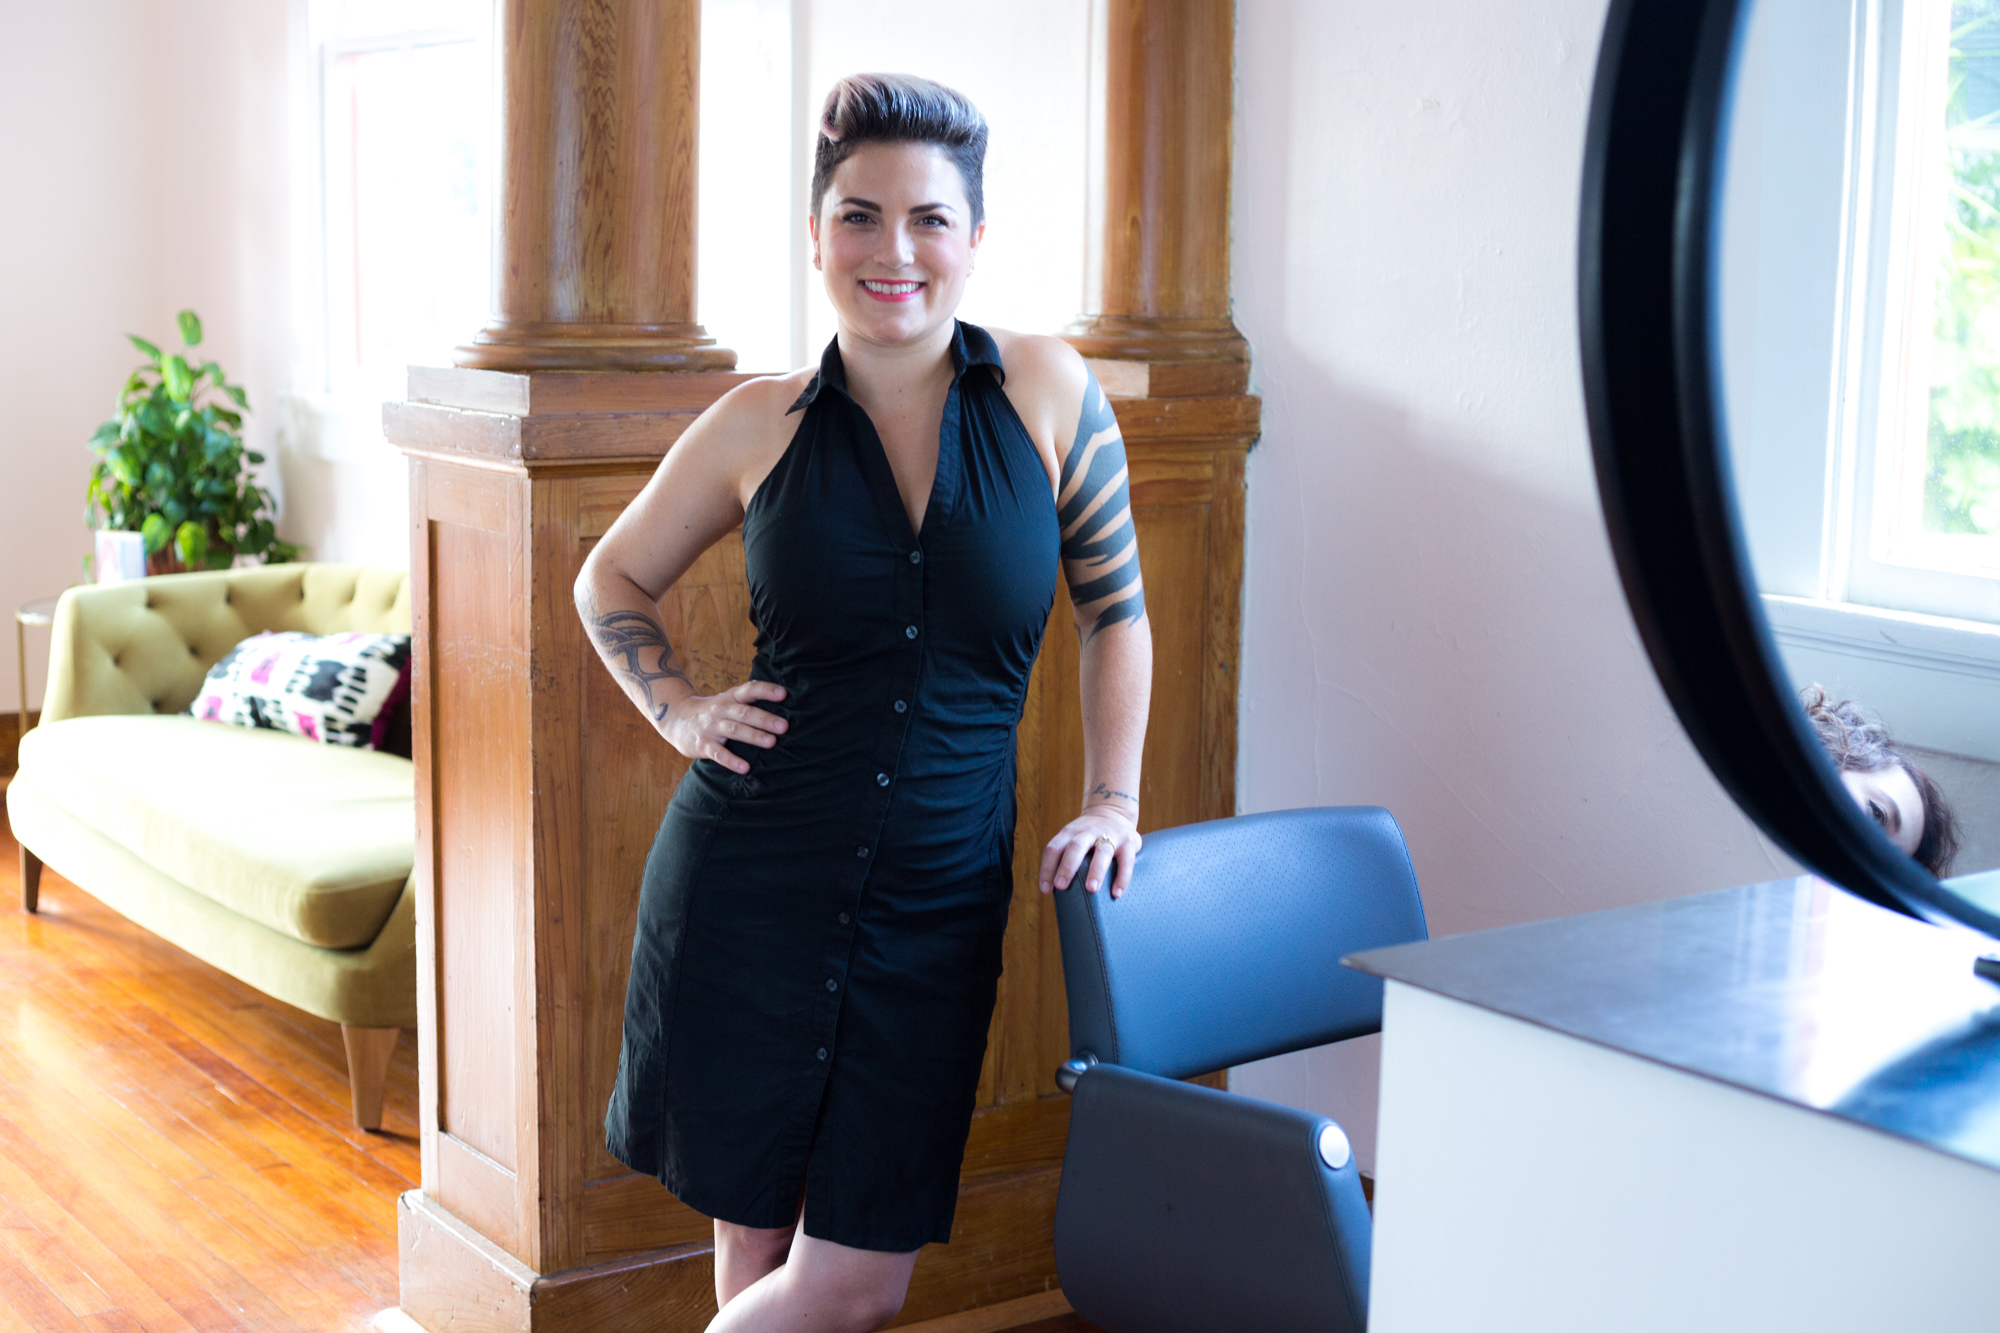 "McKenzie Zeigler - Stylist | Colorist | Makeup Artist  From the young age of 17, McKenzie knew she wanted to be a hairstylist and makeup artist. She eagerly finished high school and moved to New York City in 2005 to attend the Aveda Institute in SoHo. She obtained a degree in esthiology and cosmetology, then accepted an apprenticeship as a colorist at Cutler Salon in SoHo. After intensive training, she decided it was time to fulfill her other dream of becoming a makeup artist and completed an extensive course at the Make-up Designery.  McKenzie is specialized in color as well as razor cutting and has a large following of curly haired guests. She believes every cut and color should be customized for each individual person. She has more than 10 years' experience with bridal, beauty, fashion and costume makeup. Hair and makeup are a true passion for her, and she embraces any and every opportunity to learn more about her art.  Fun Facts: First visited New Orleans in October 2010 and moved here the following June! She is originally from CT so her favorite food is obvi CT pizza and True Crime shows. You also might see McKenzie out on the parade route because she dances in the Organ Grinders!  Pets: Two Cats  Review: ""Aside from the adorableness of the salon, every moment of a visit is incredible. The entire staff is welcoming and lovely, the hospitality is wonderful (complimentary wine, coffee, tea, water, beer, or a lil liquor), and gifted dressers. I most appreciate the level of thought they've put into their service offerings and their bathroom! It's a wonderful salon. Special shout out to my favorite hair dresser, McKenzie. She's knowledgeable and gifted and one to trust, especially with curly hair!"" -   Erika Enlund"